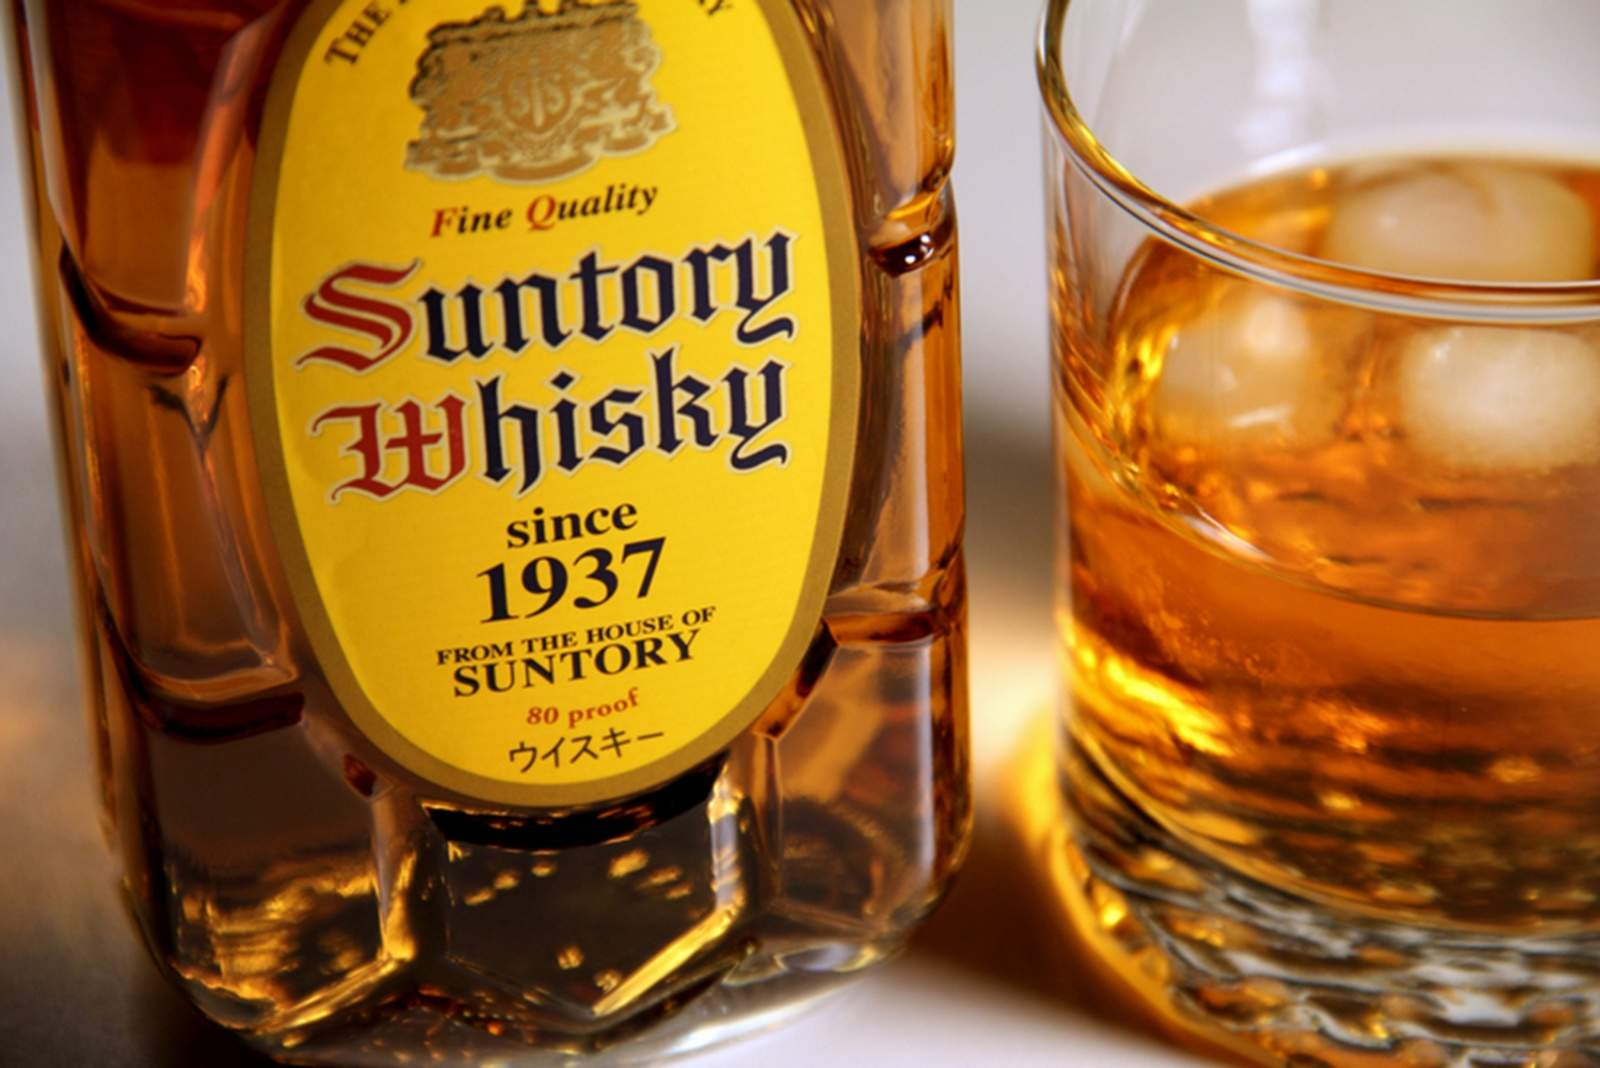 Suntory whiskey mellows with age, but the company wants to know how it tastes after time in space.